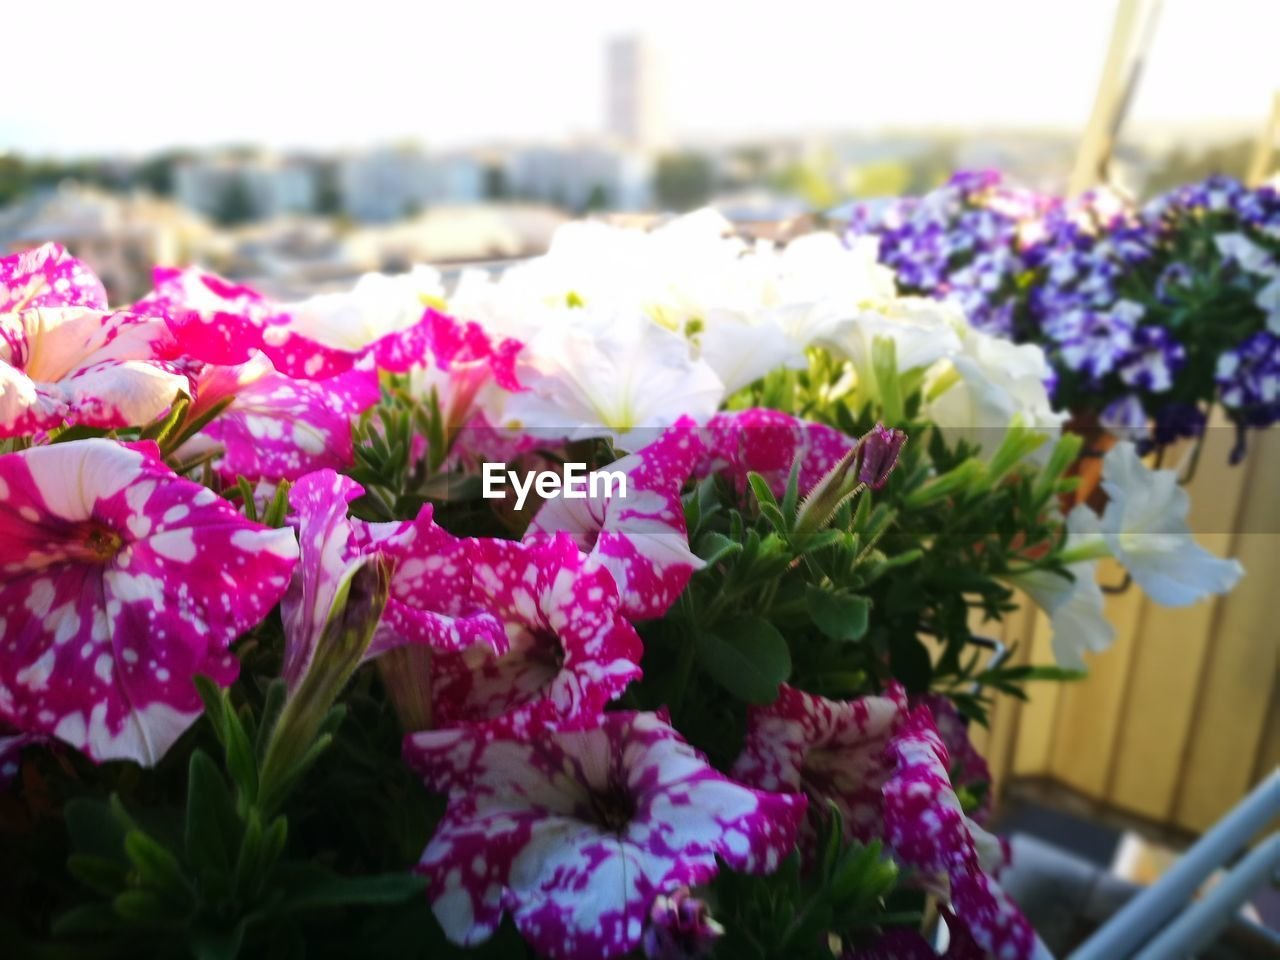 flower, beauty in nature, fragility, nature, petal, freshness, pink color, no people, flower head, growth, plant, purple, outdoors, close-up, focus on foreground, day, blooming, leaf